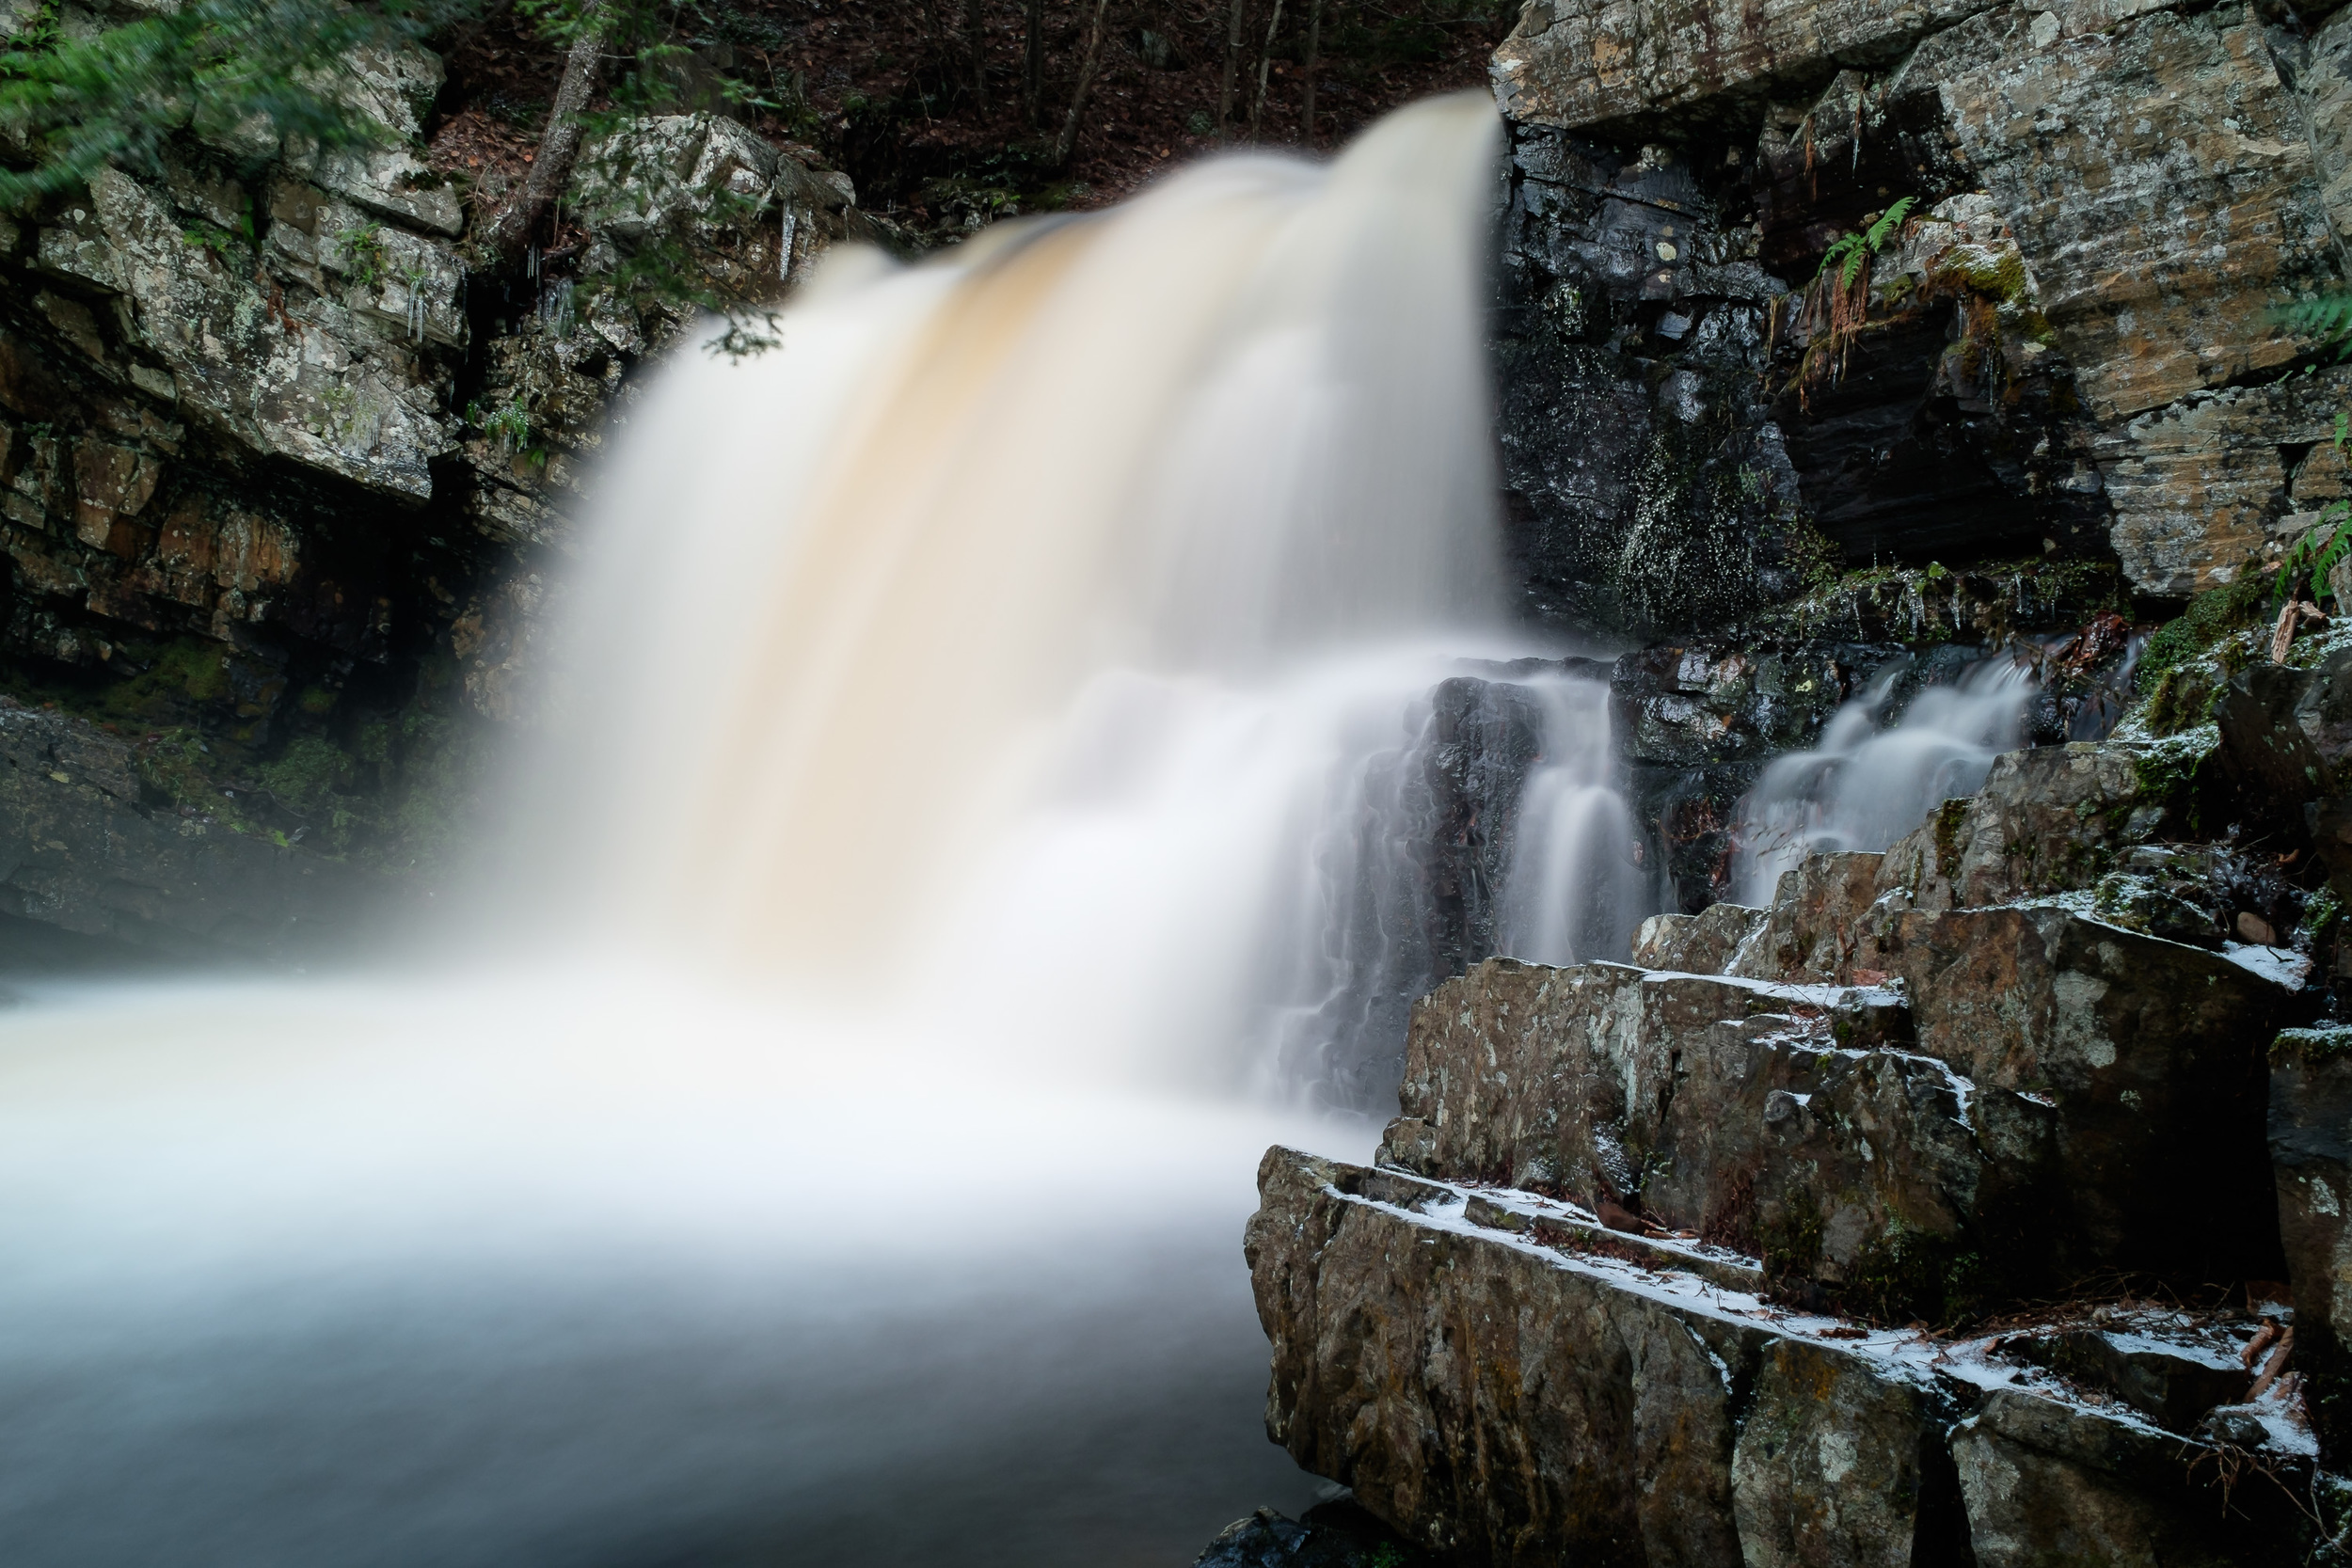 Ettinger Falls - an X100T photo with in-camera adjustments.